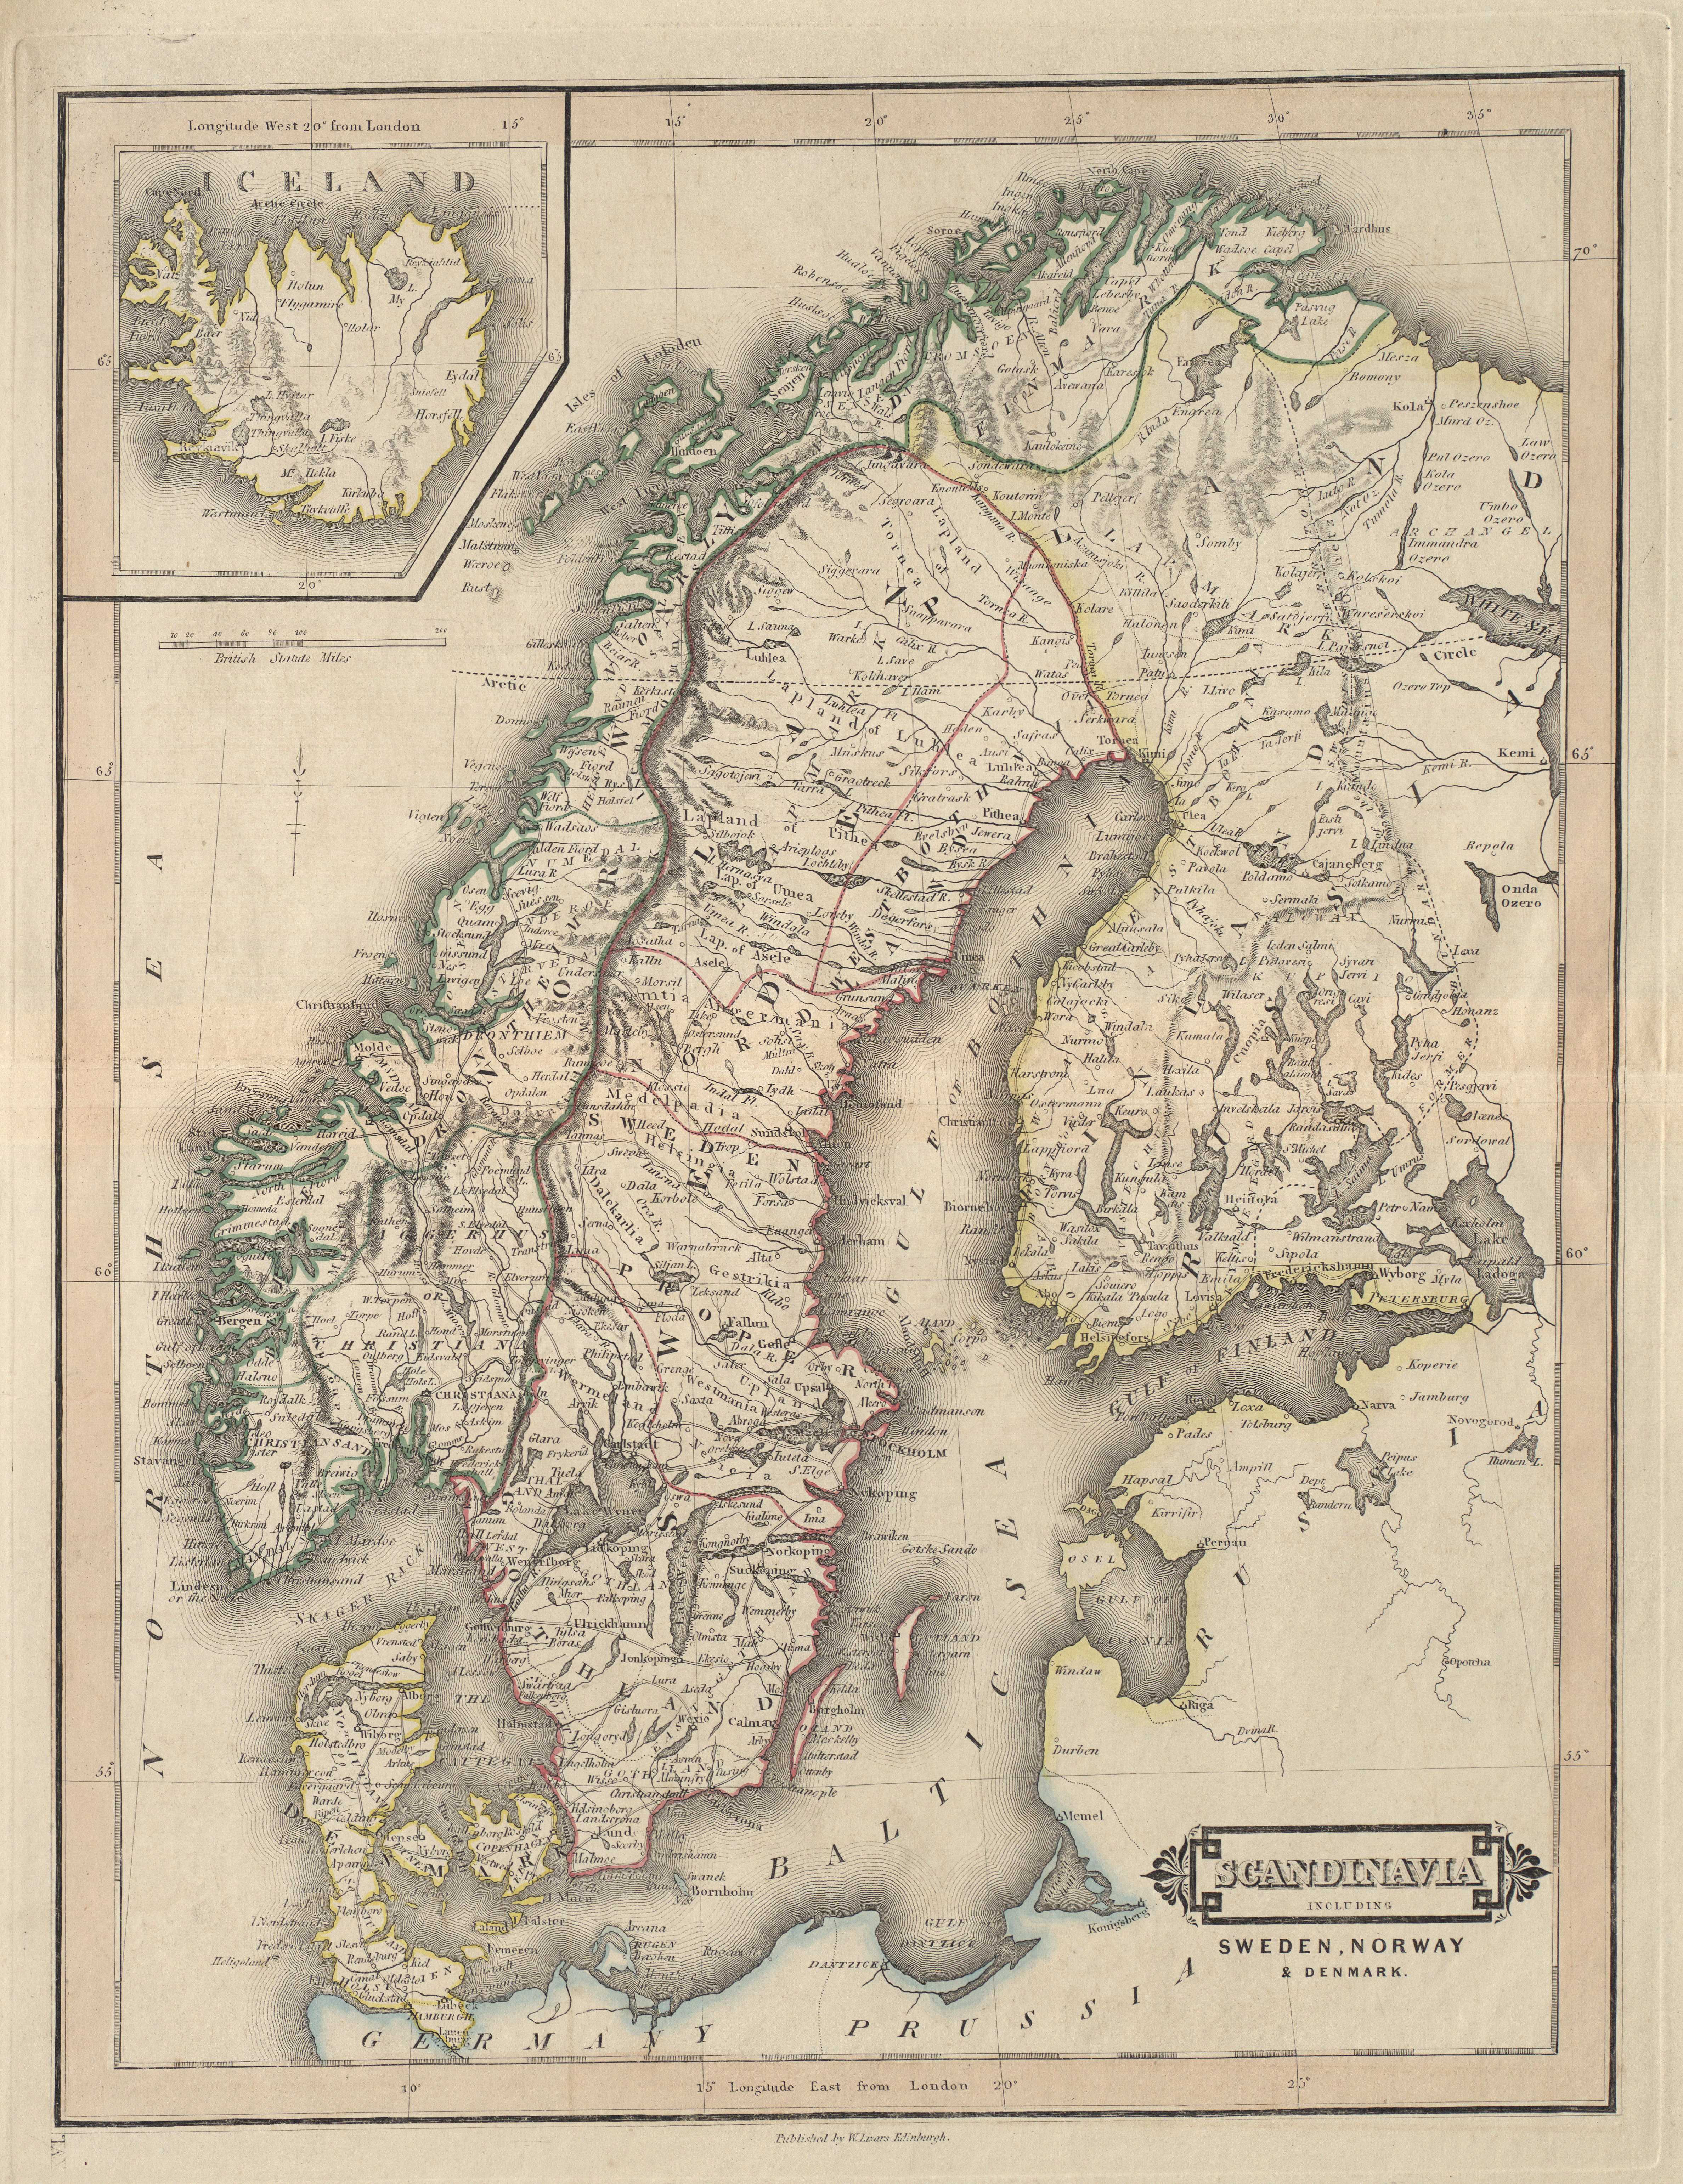 Scandinavia, including Sweden, Norway & Denmark - Iceland